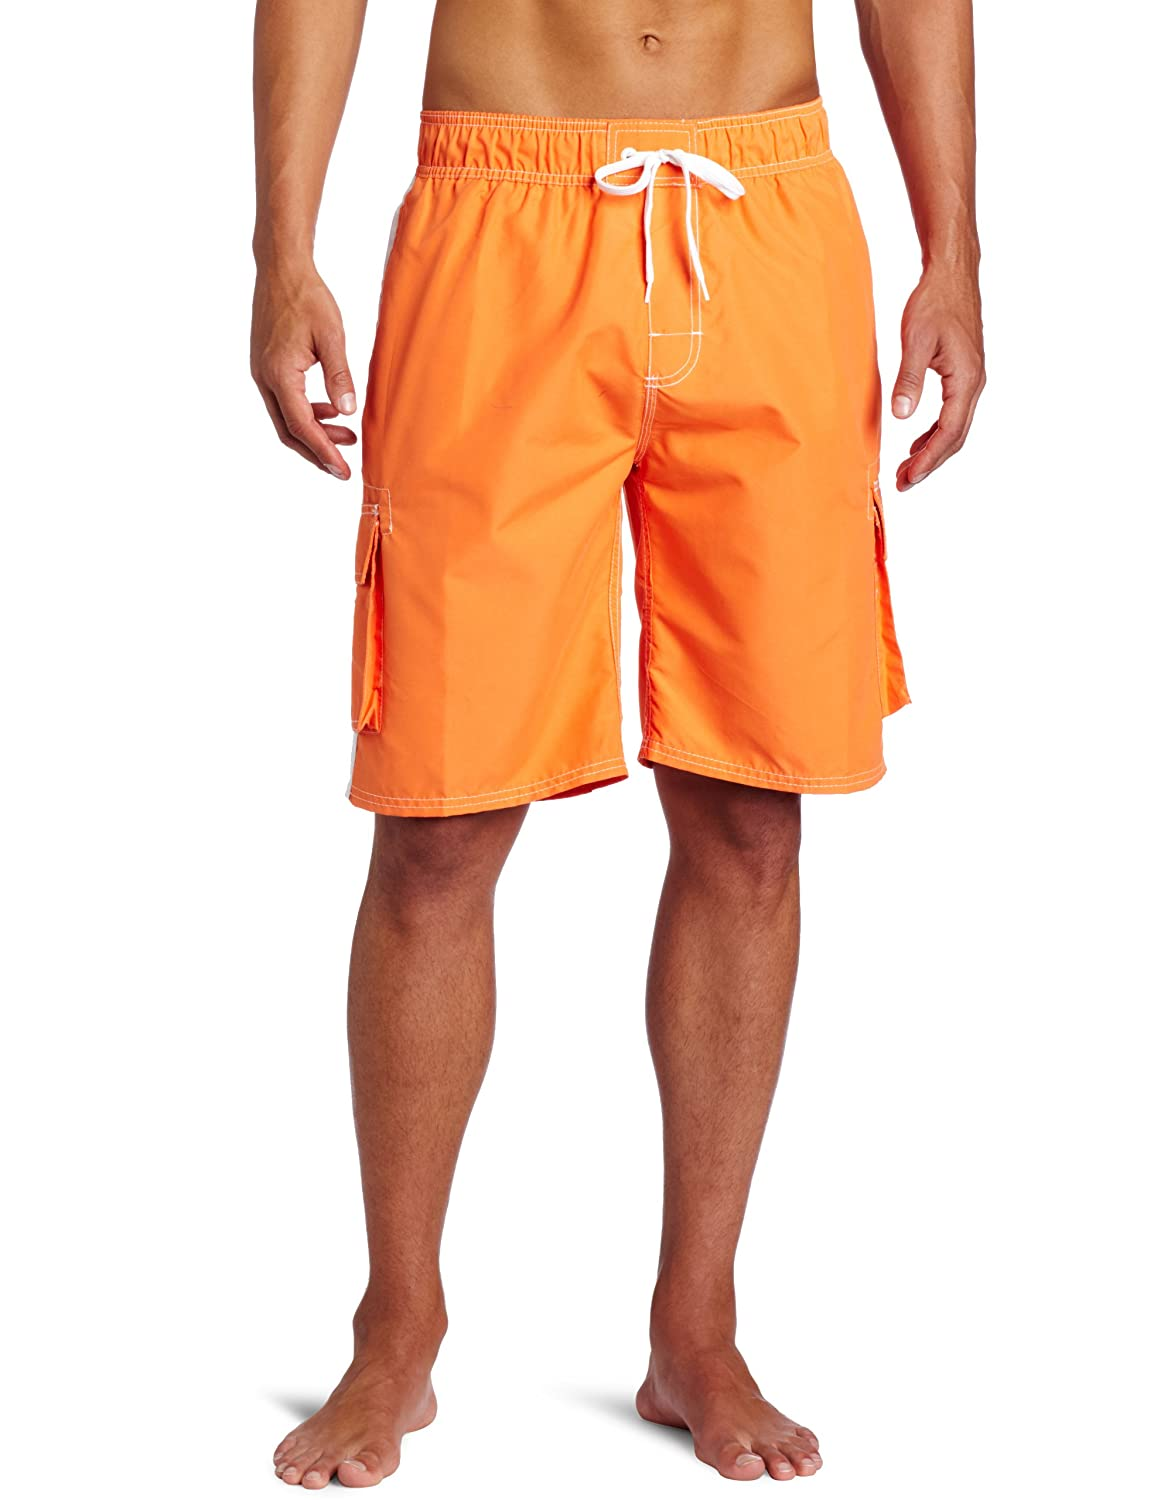 Kanu Surf Mens Barracuda Extended Size Trunk Kanu Surf Men/'s Swimwear 7064X